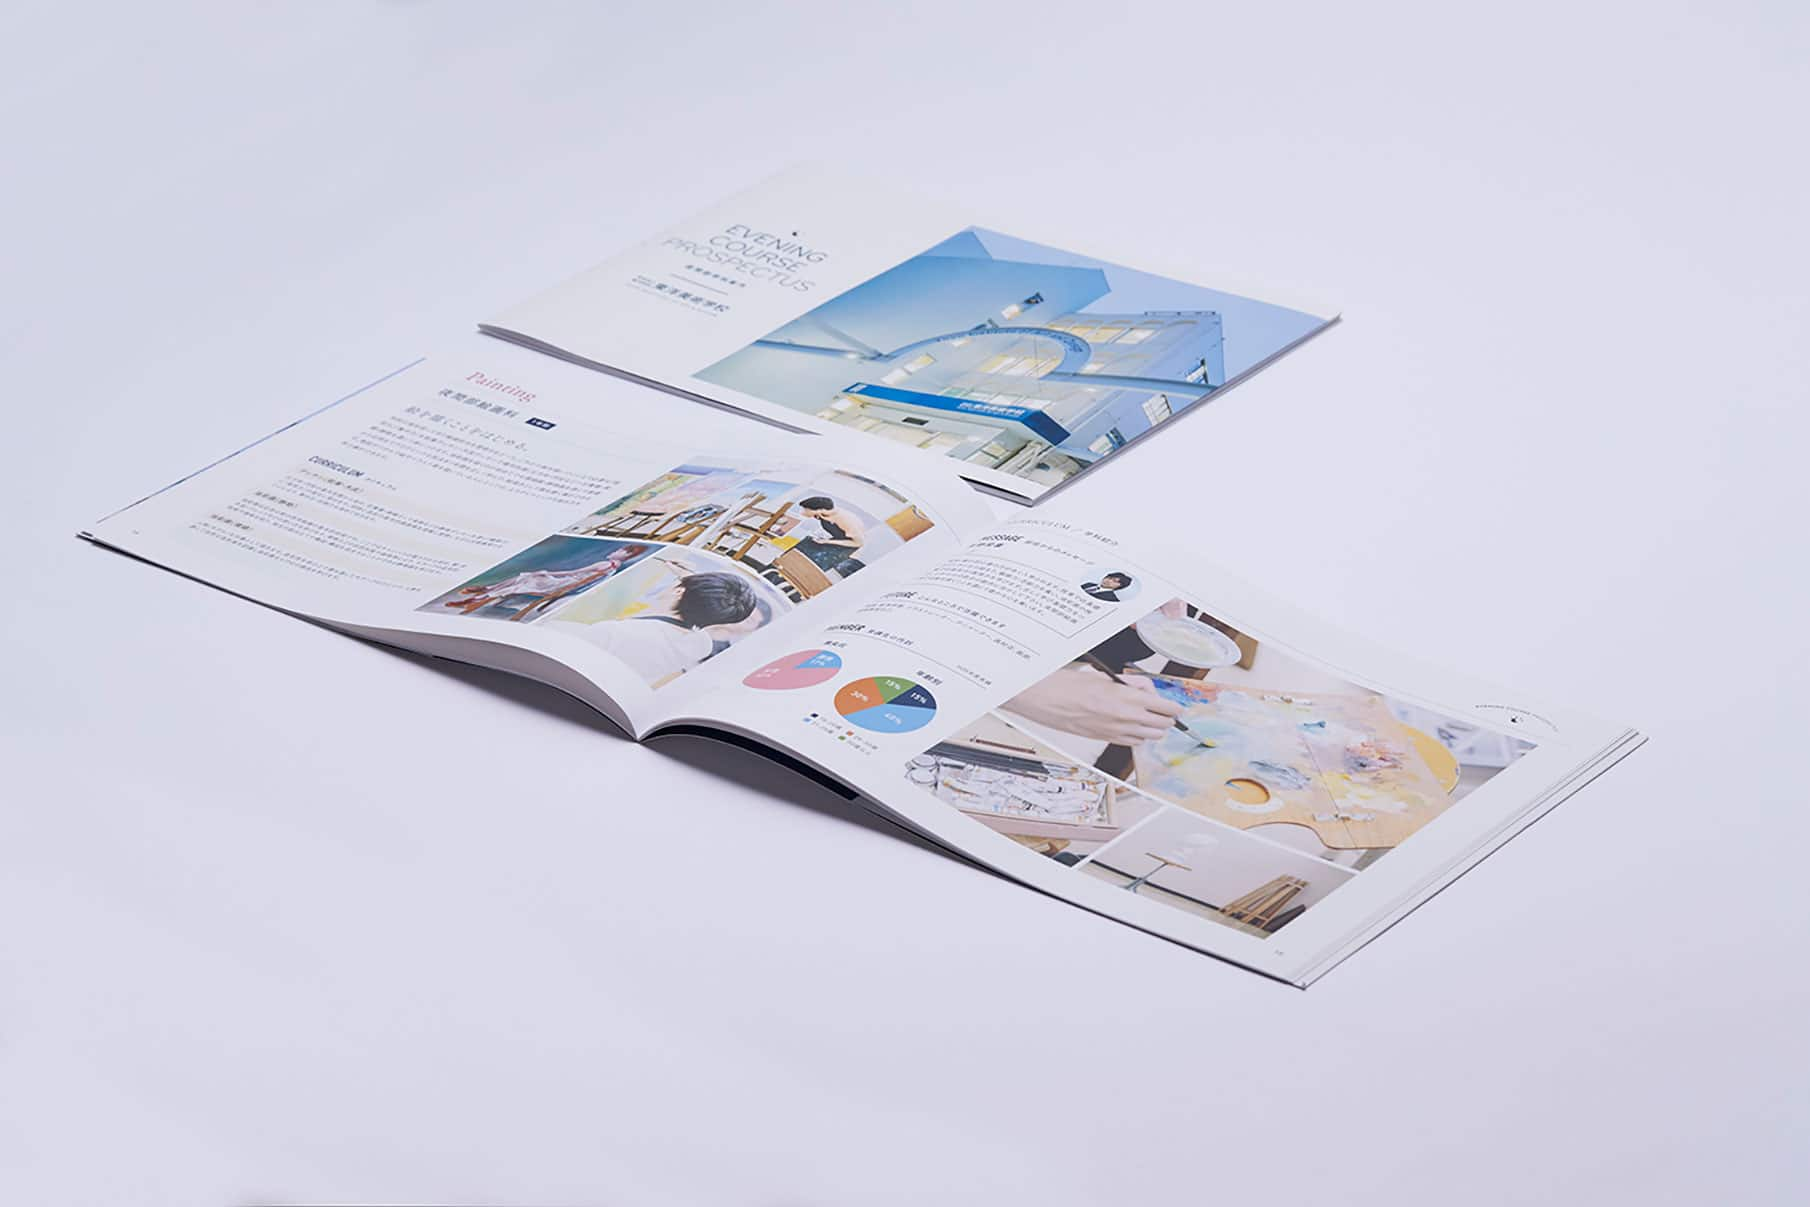 Toyo institute of art and design - Evening Course Prospectus 6